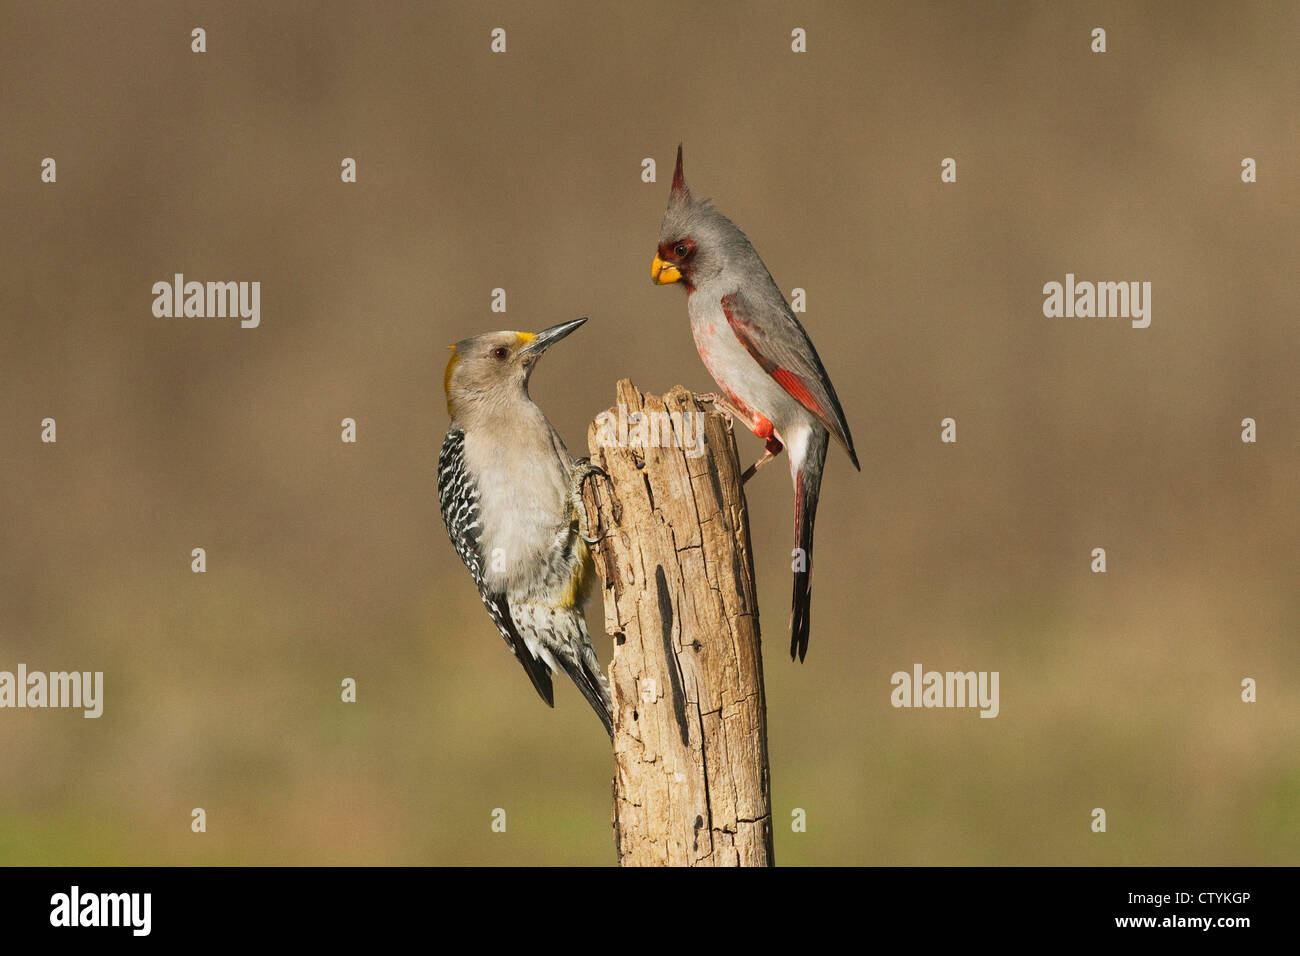 Pyrrhuloxia (Cardinalis sinuatus), male and Golden-fronted Woodpecker (Melanerpes aurifrons) perched, Starr County, Texas Stock Photo